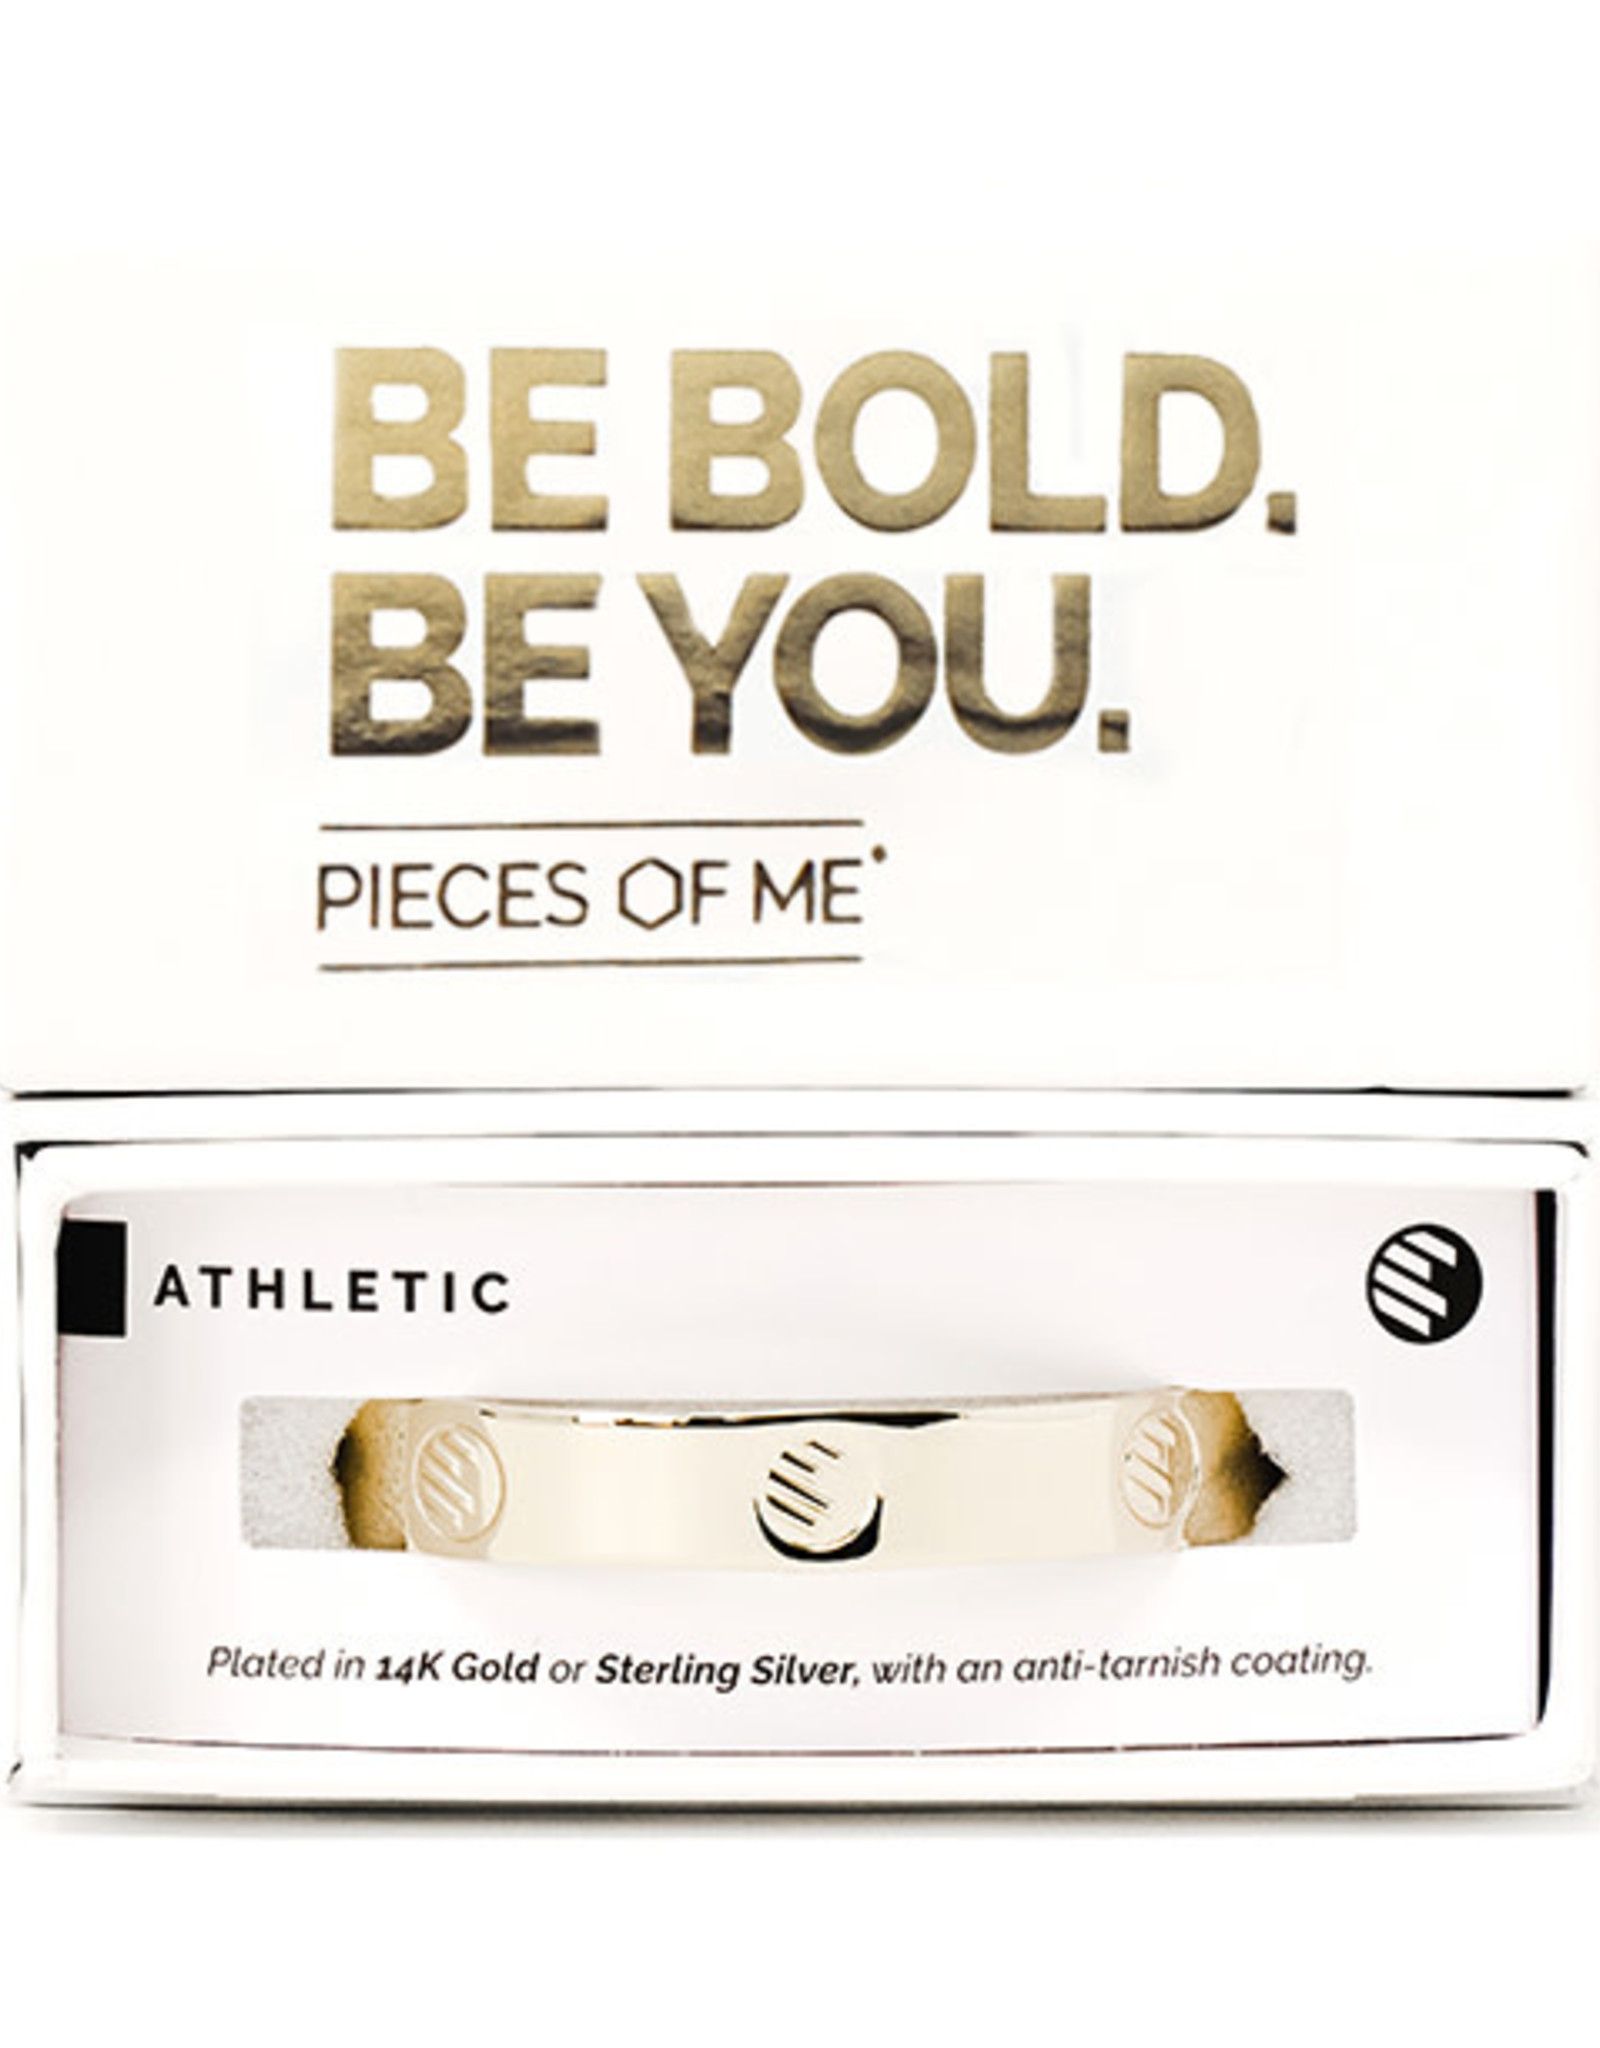 Pieces of Me Bracelet Athletic Gold